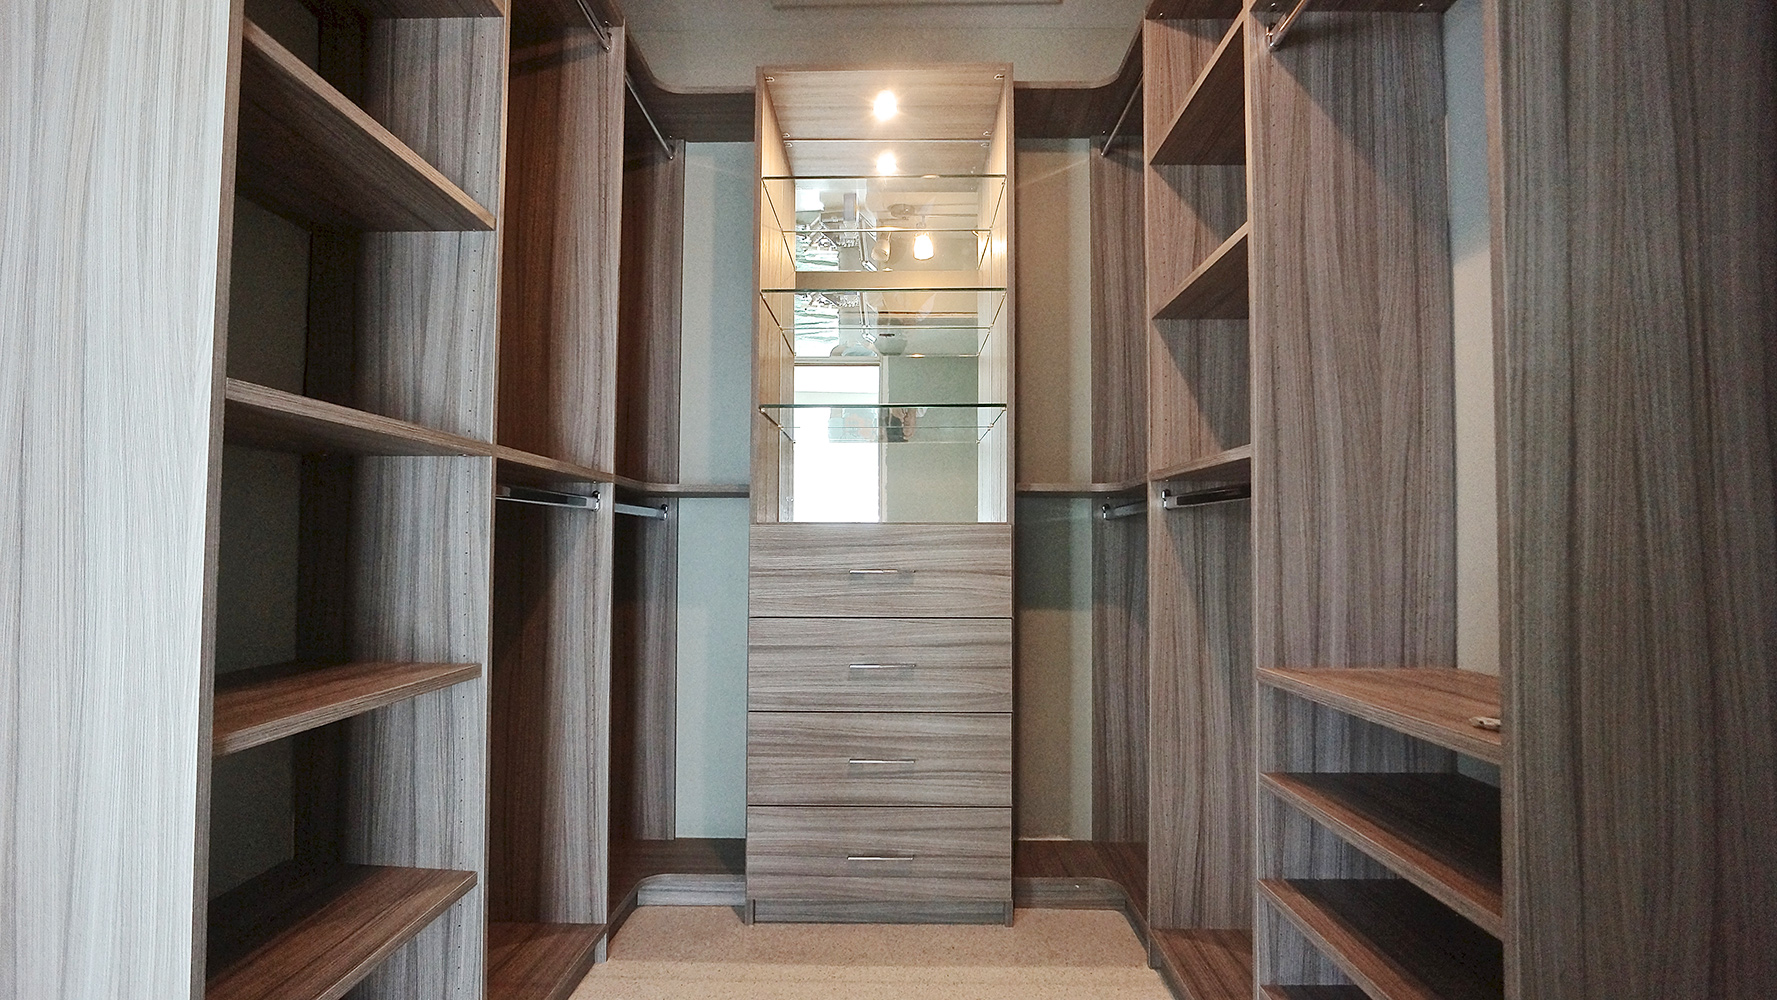 A custom closet designed by Spazio Closet in Miami, Florida